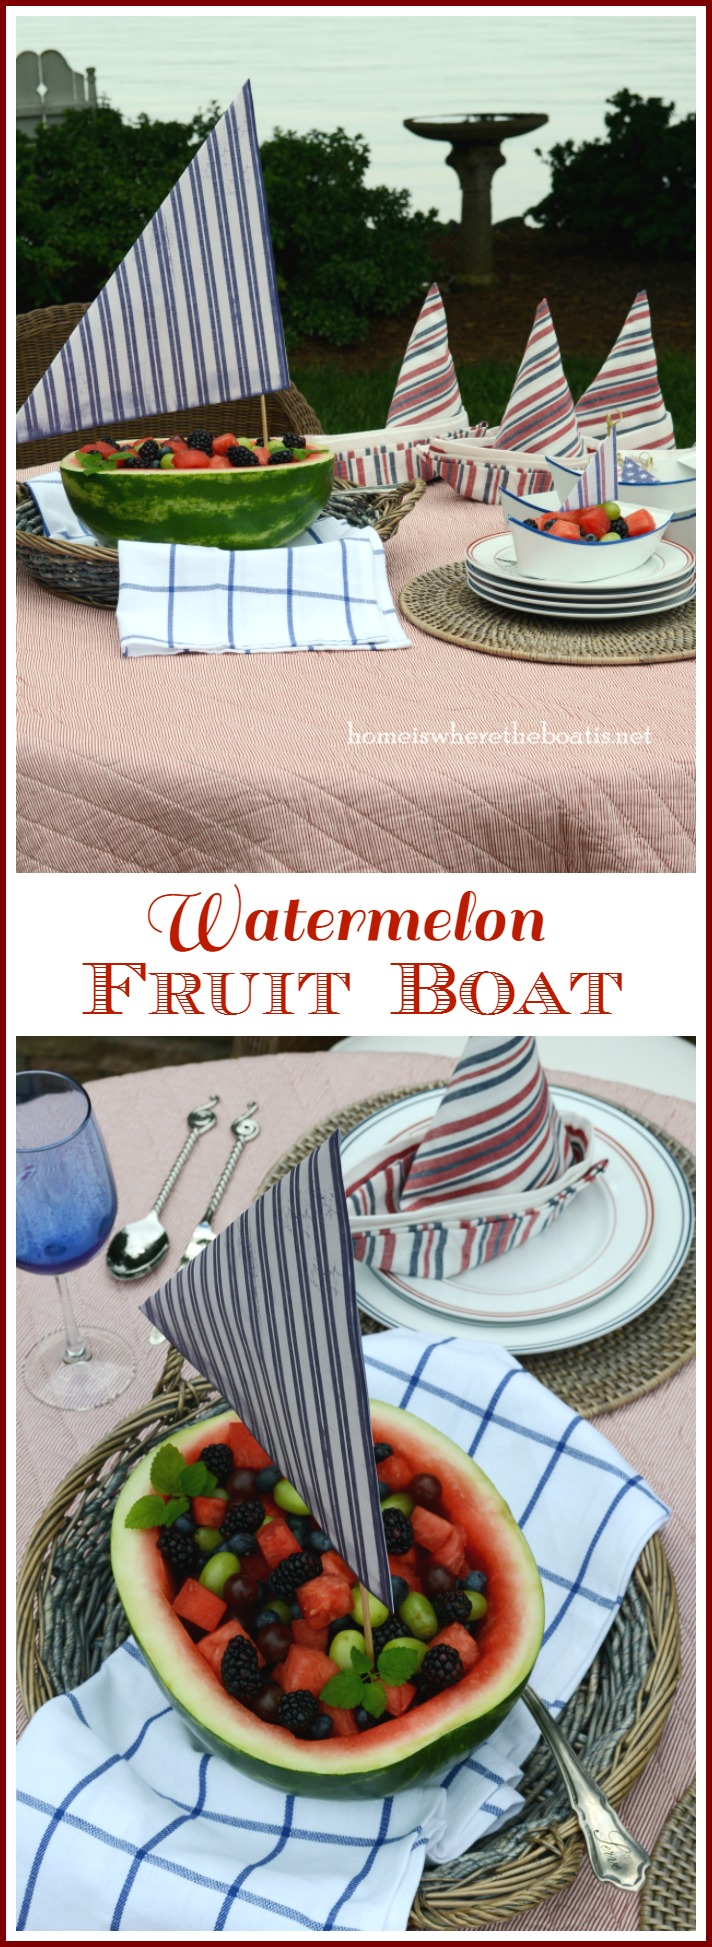 watermelon fruit boat border